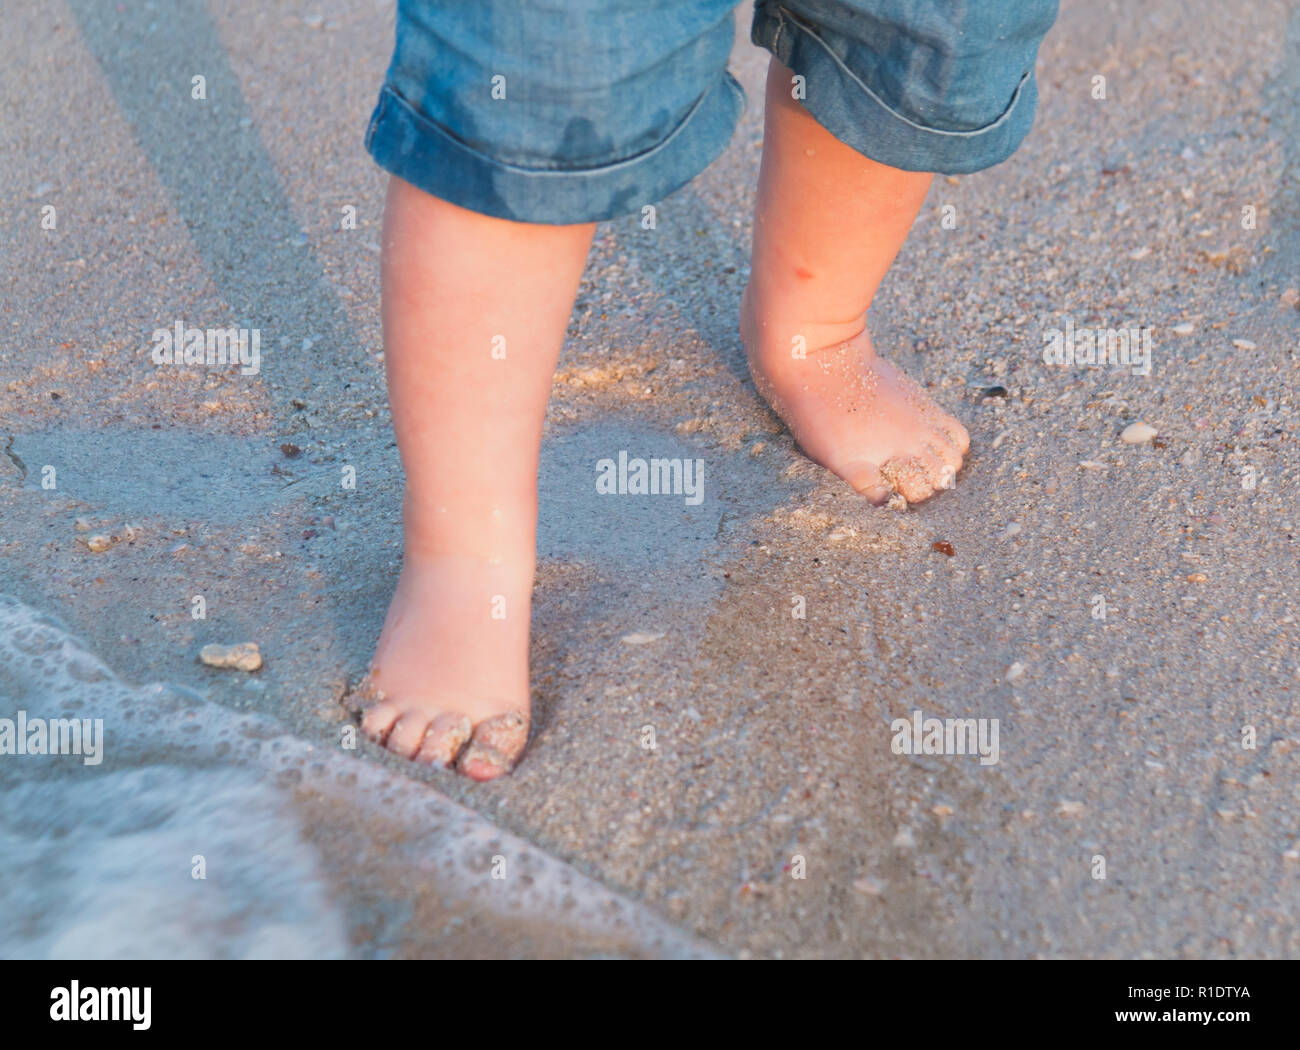 Bare feet walking at sandy beach near the sea. Little baby in blue jeans shorts going to touch the sea at sunset. Wave washes baby's feet. Toned. Soft focus. - Stock Image